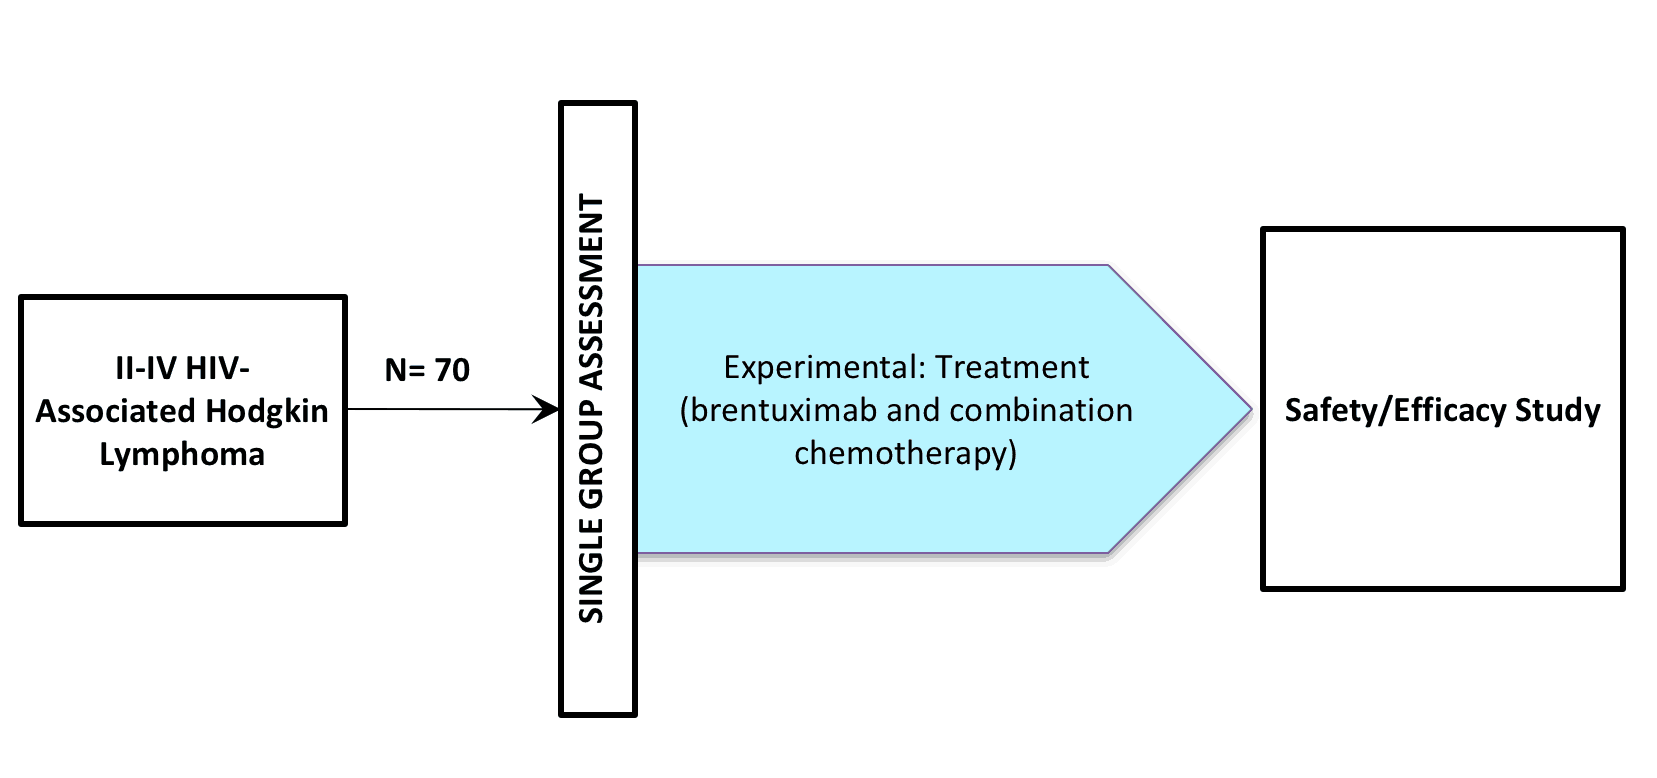 NCT01771107 (Clinical Trial / Brentuximab Vedotin)